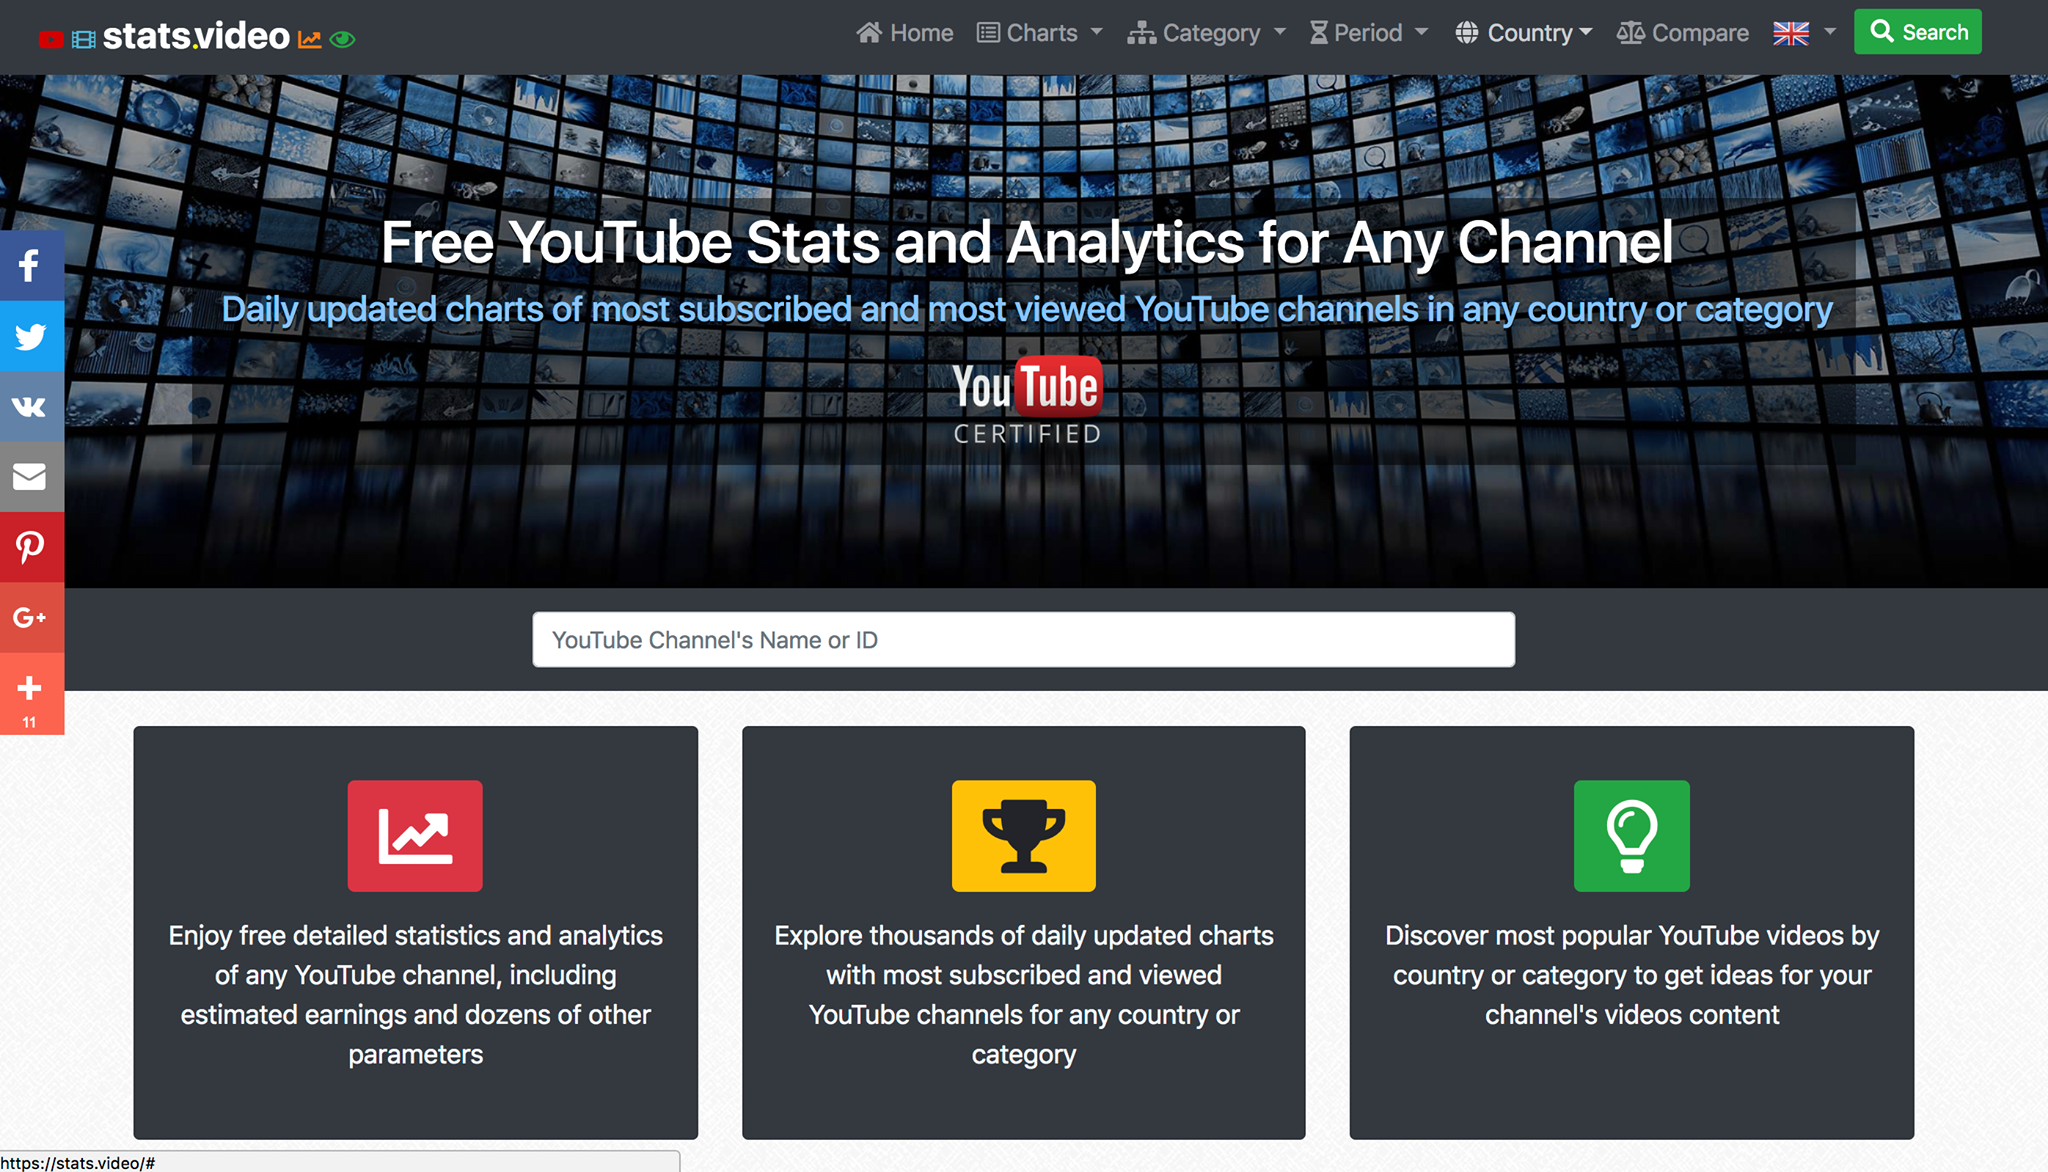 How To Easily View And Analayze YouTube Stats For Any Channel- For Free!